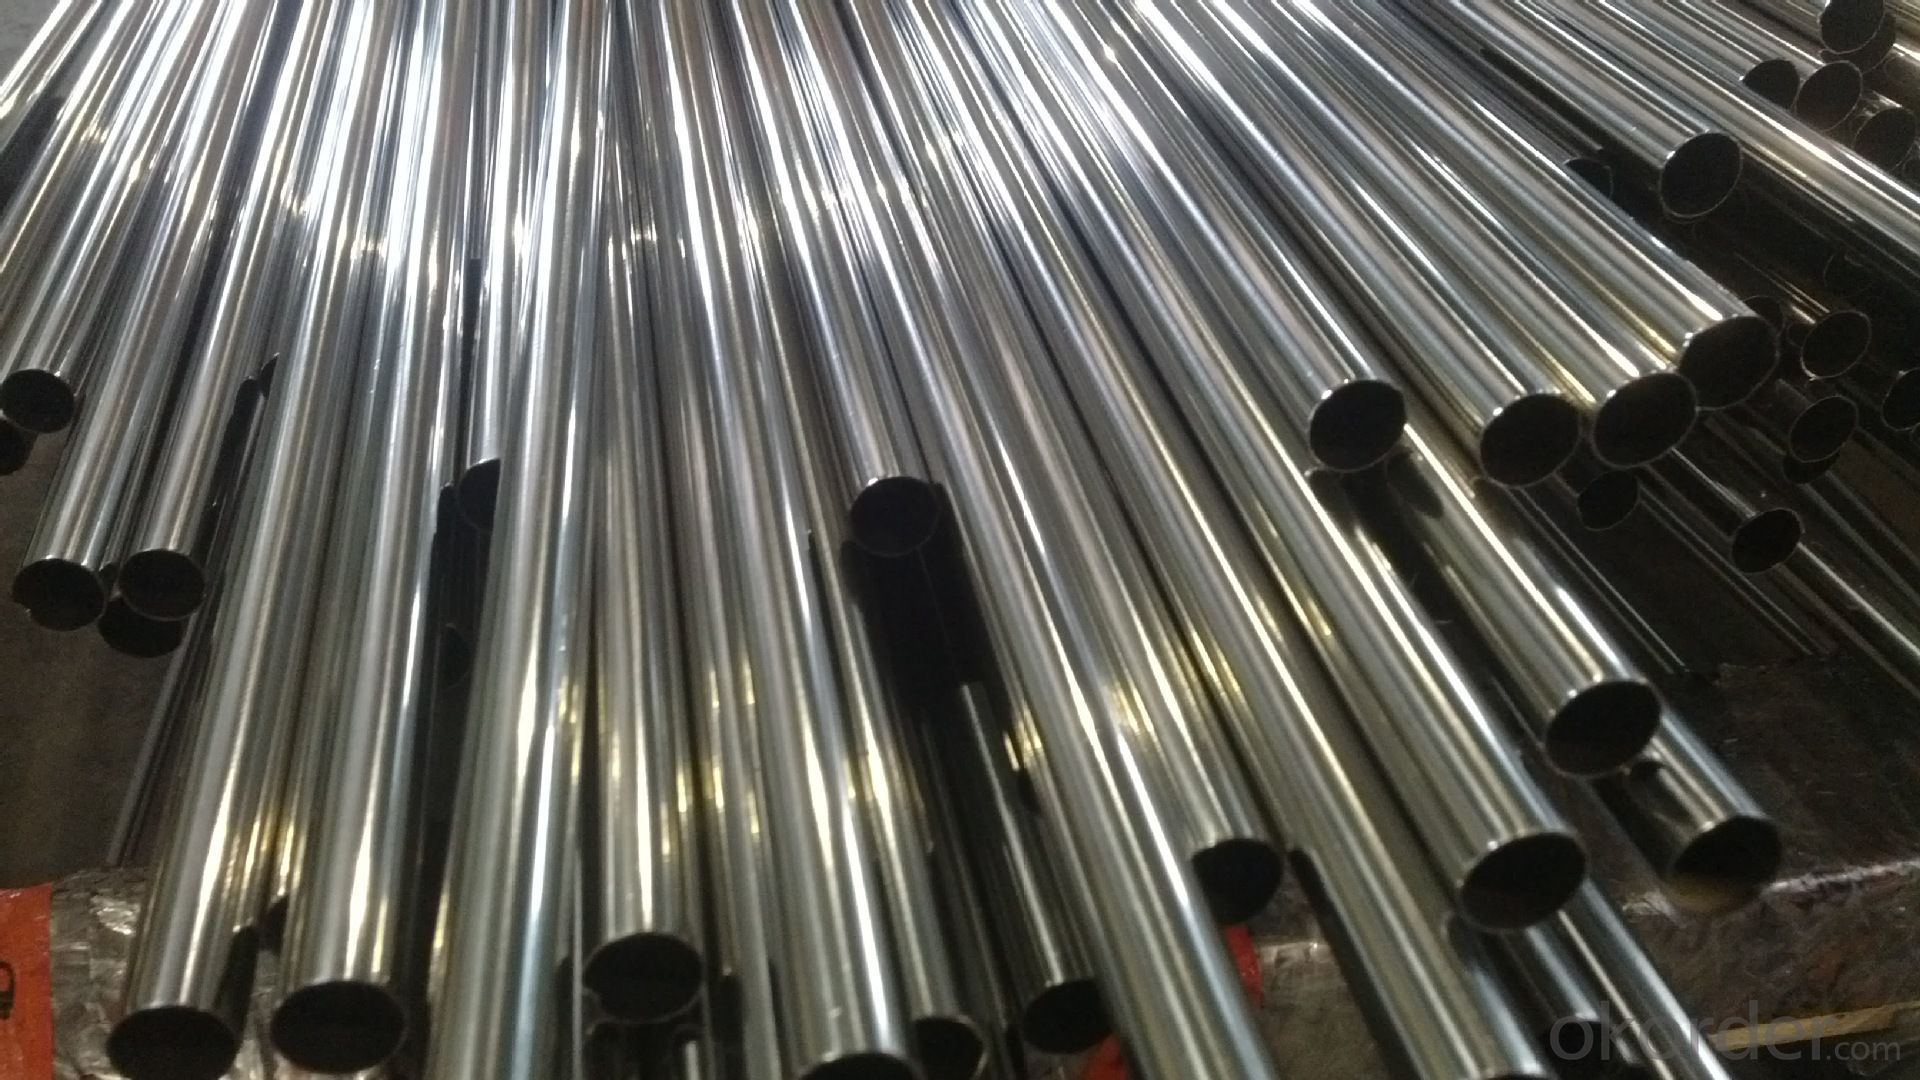 High selling quality bright stainless steel pipe ASTM 316L